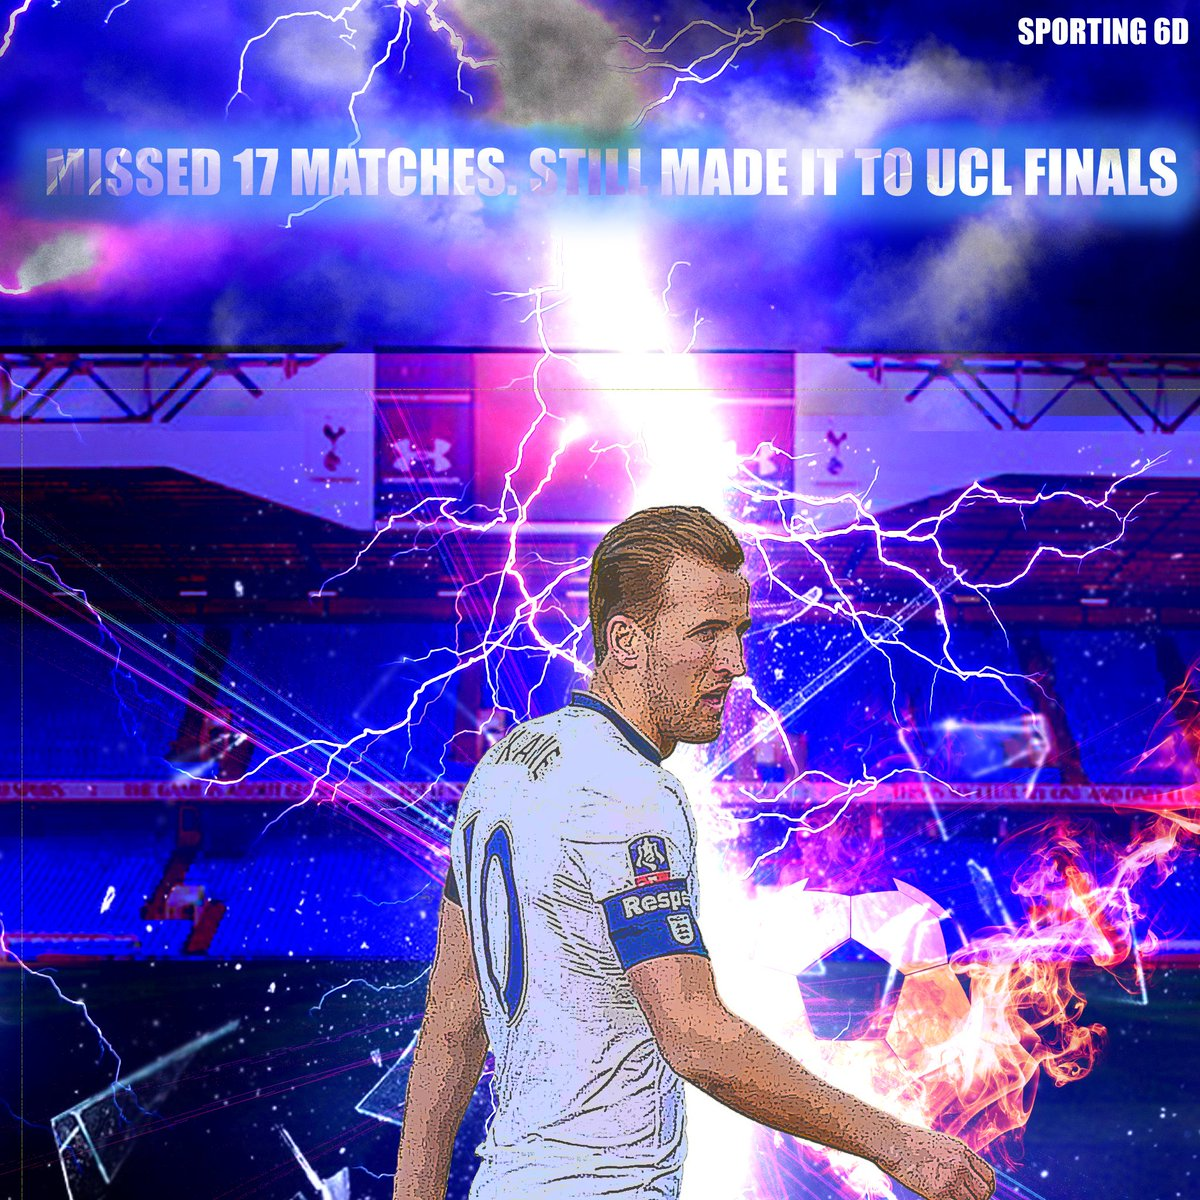 Despite missing out best players due to injuries #Tottenham has managed to reach the #UCLfinal. Can they beat the mighty #Liverpool?#UCL #ChampionsLeague #ChampionsLeagueFinal #PL Liverpool Spurs Tottenham #LFC #THFC #thfc #coys #COYS #LIVTOT #Spurs #harrykane #fridayfeeling